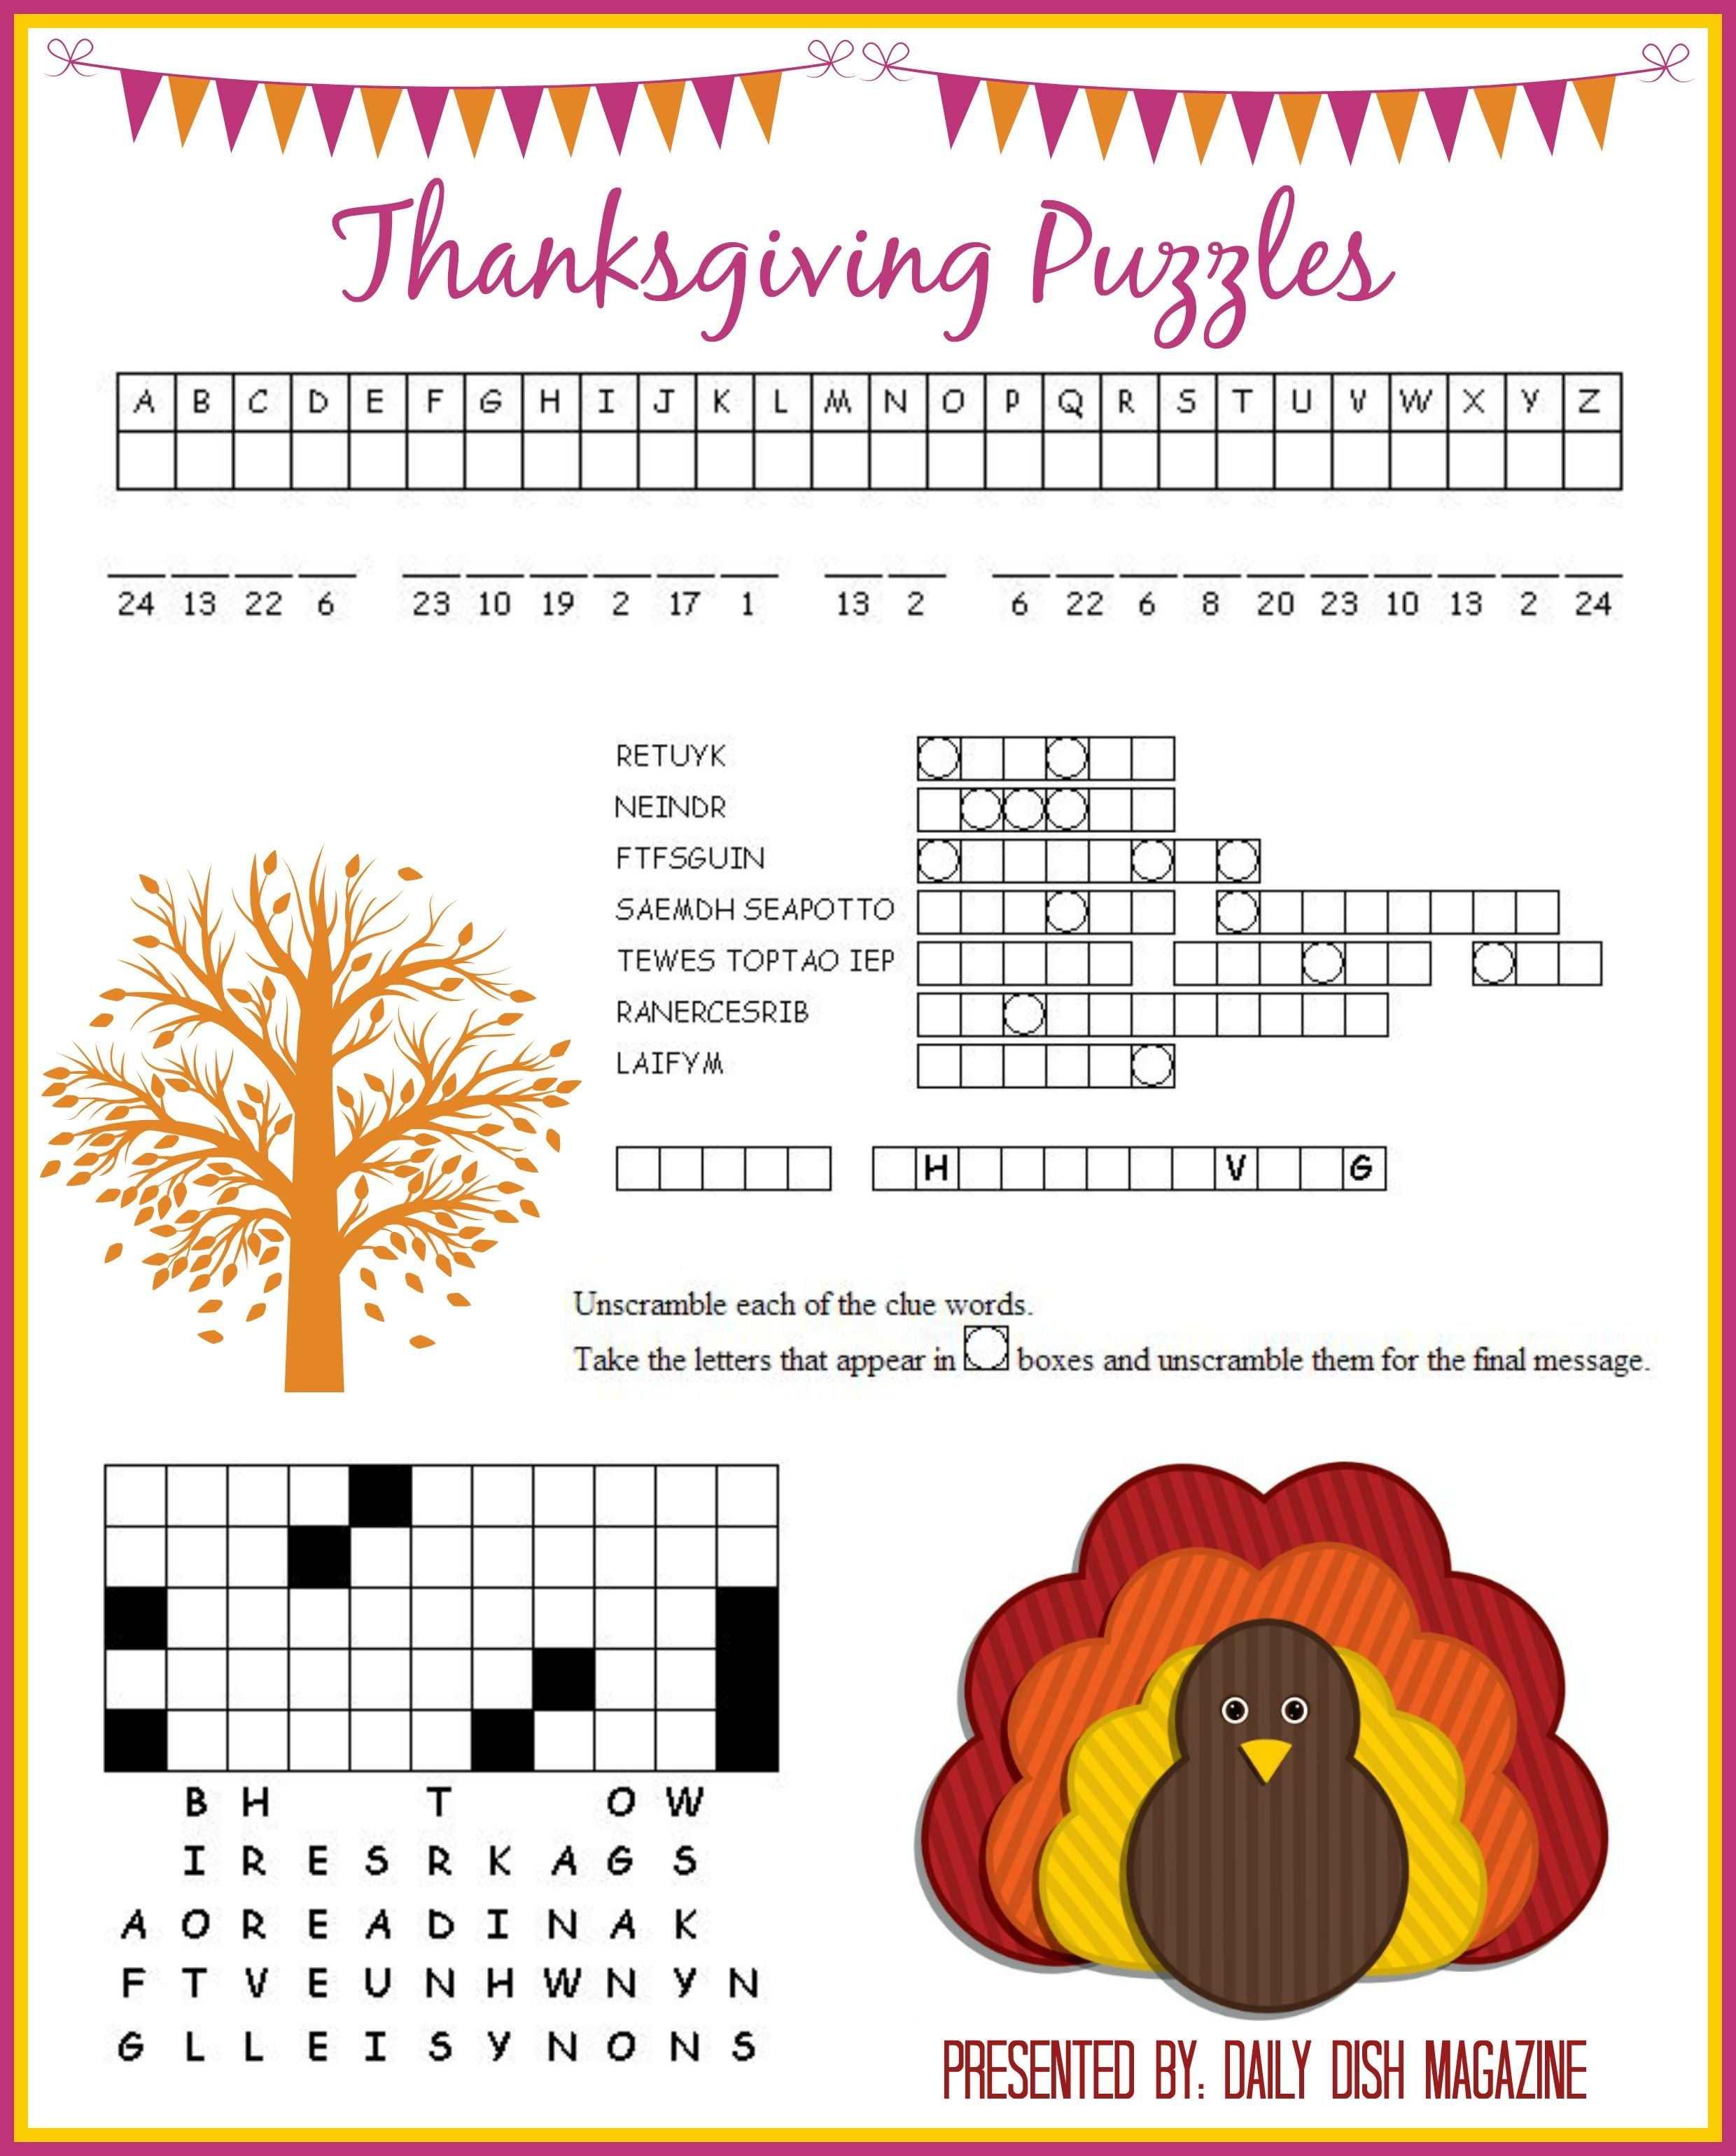 Thanksgiving Puzzles Printables | *holidays We Celebrate - Printable Thanksgiving Puzzle